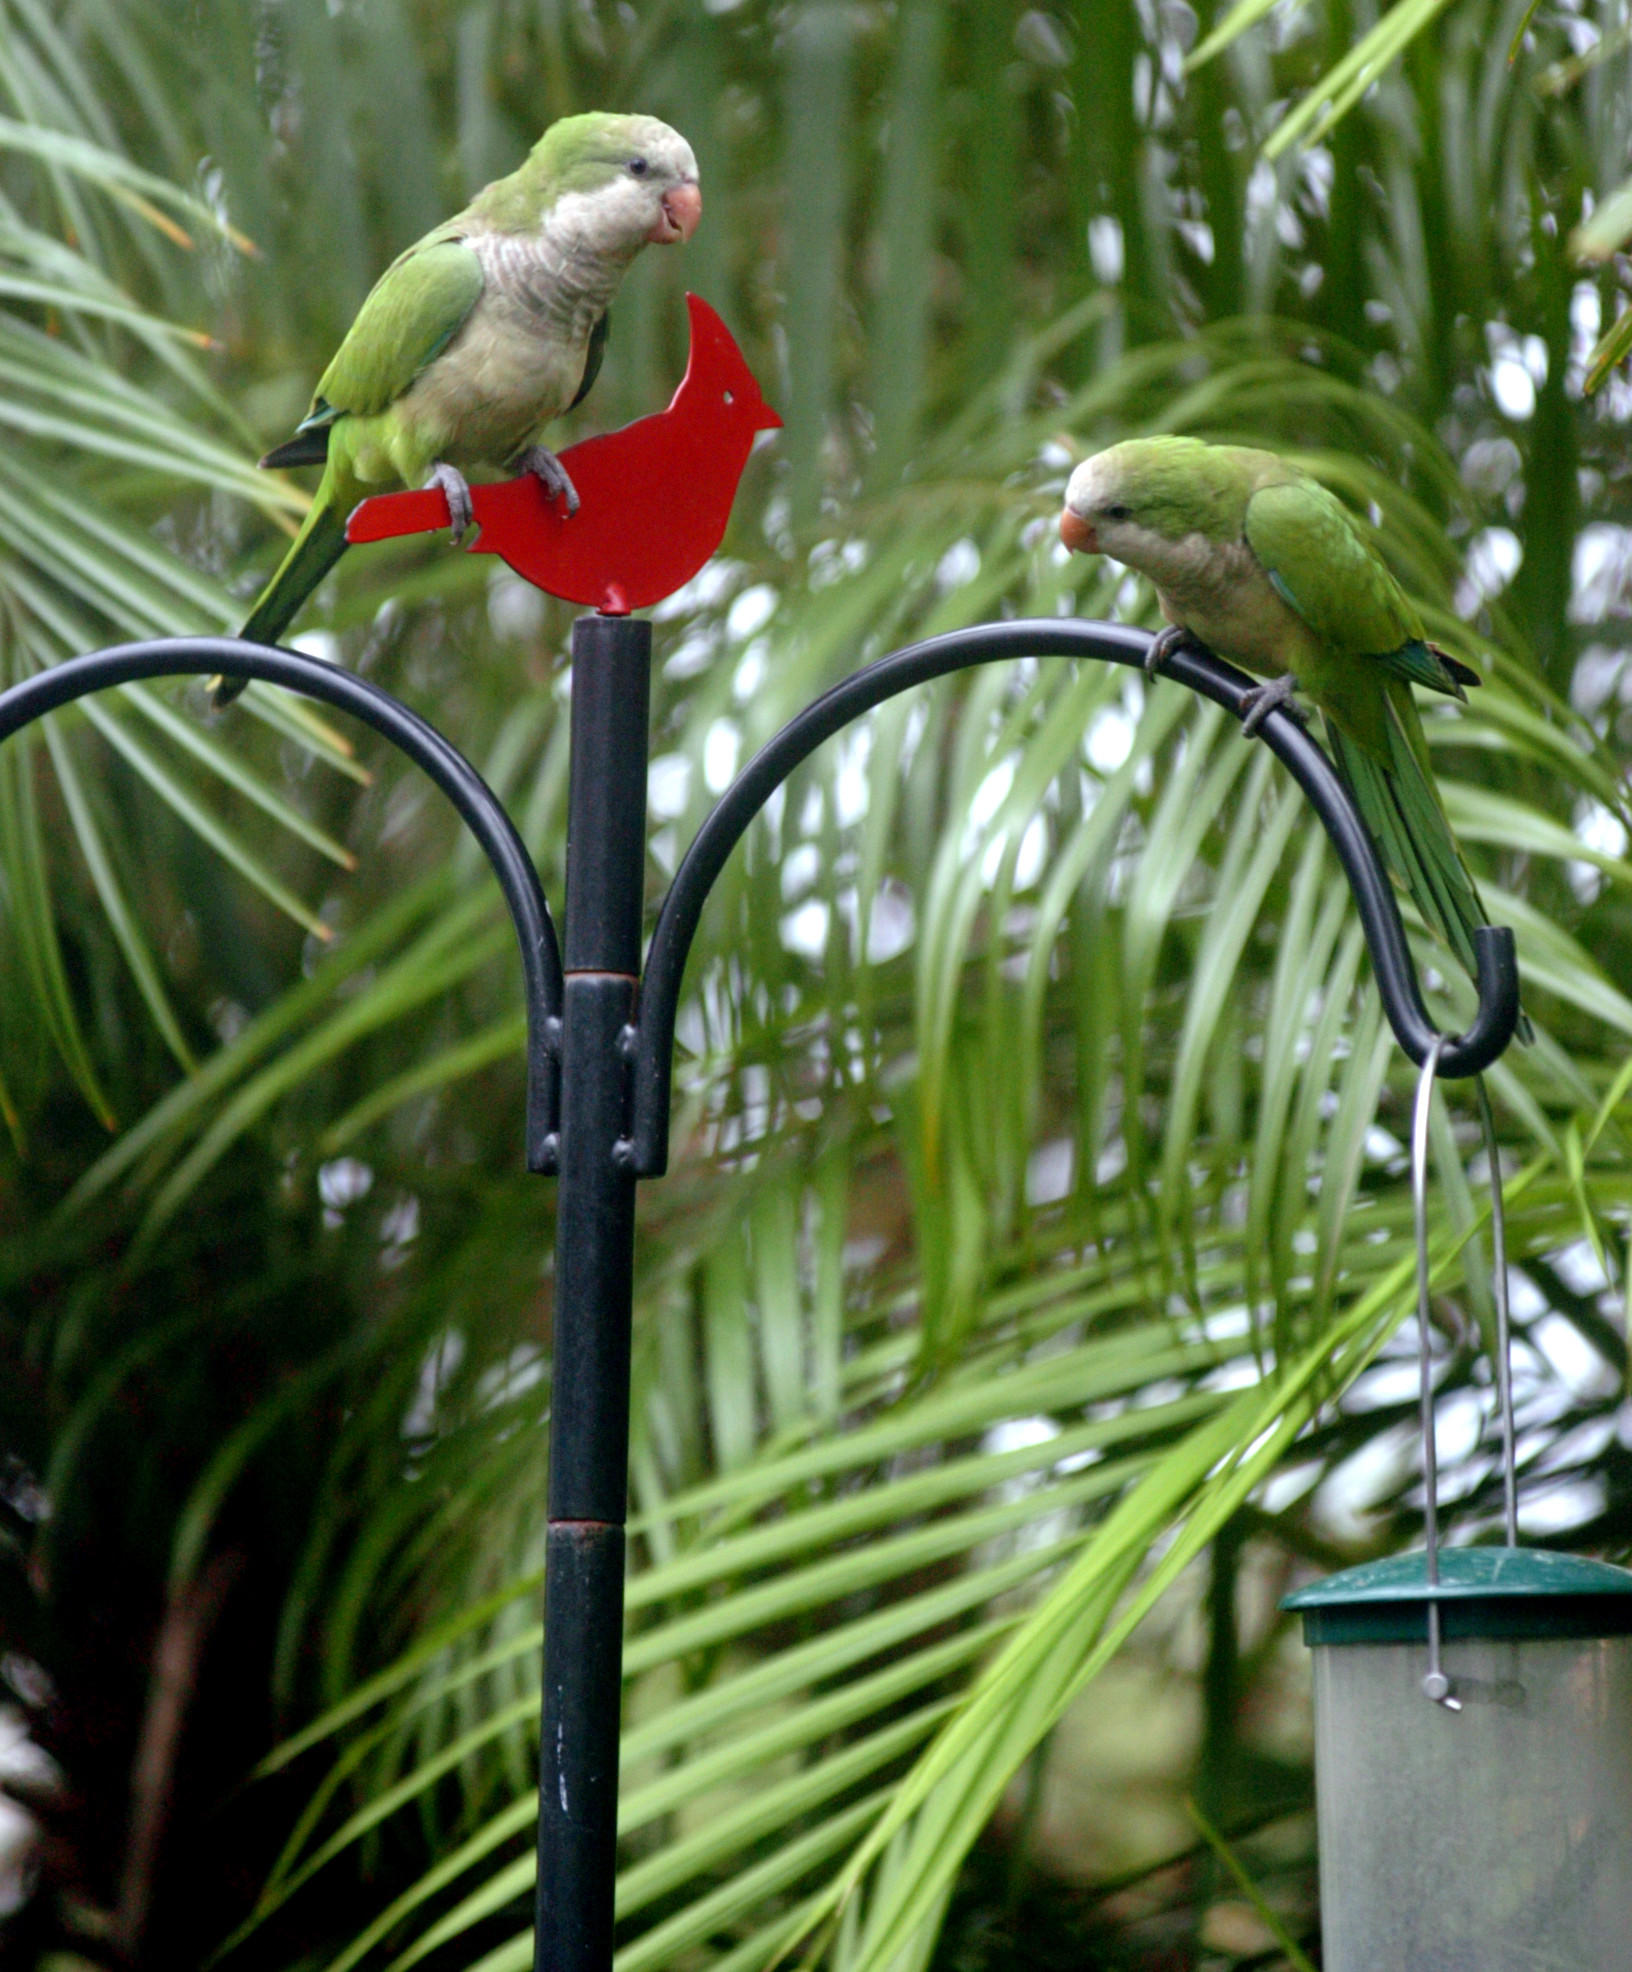 Monk parakeets that feed in the yard of a home in Coral Springs.